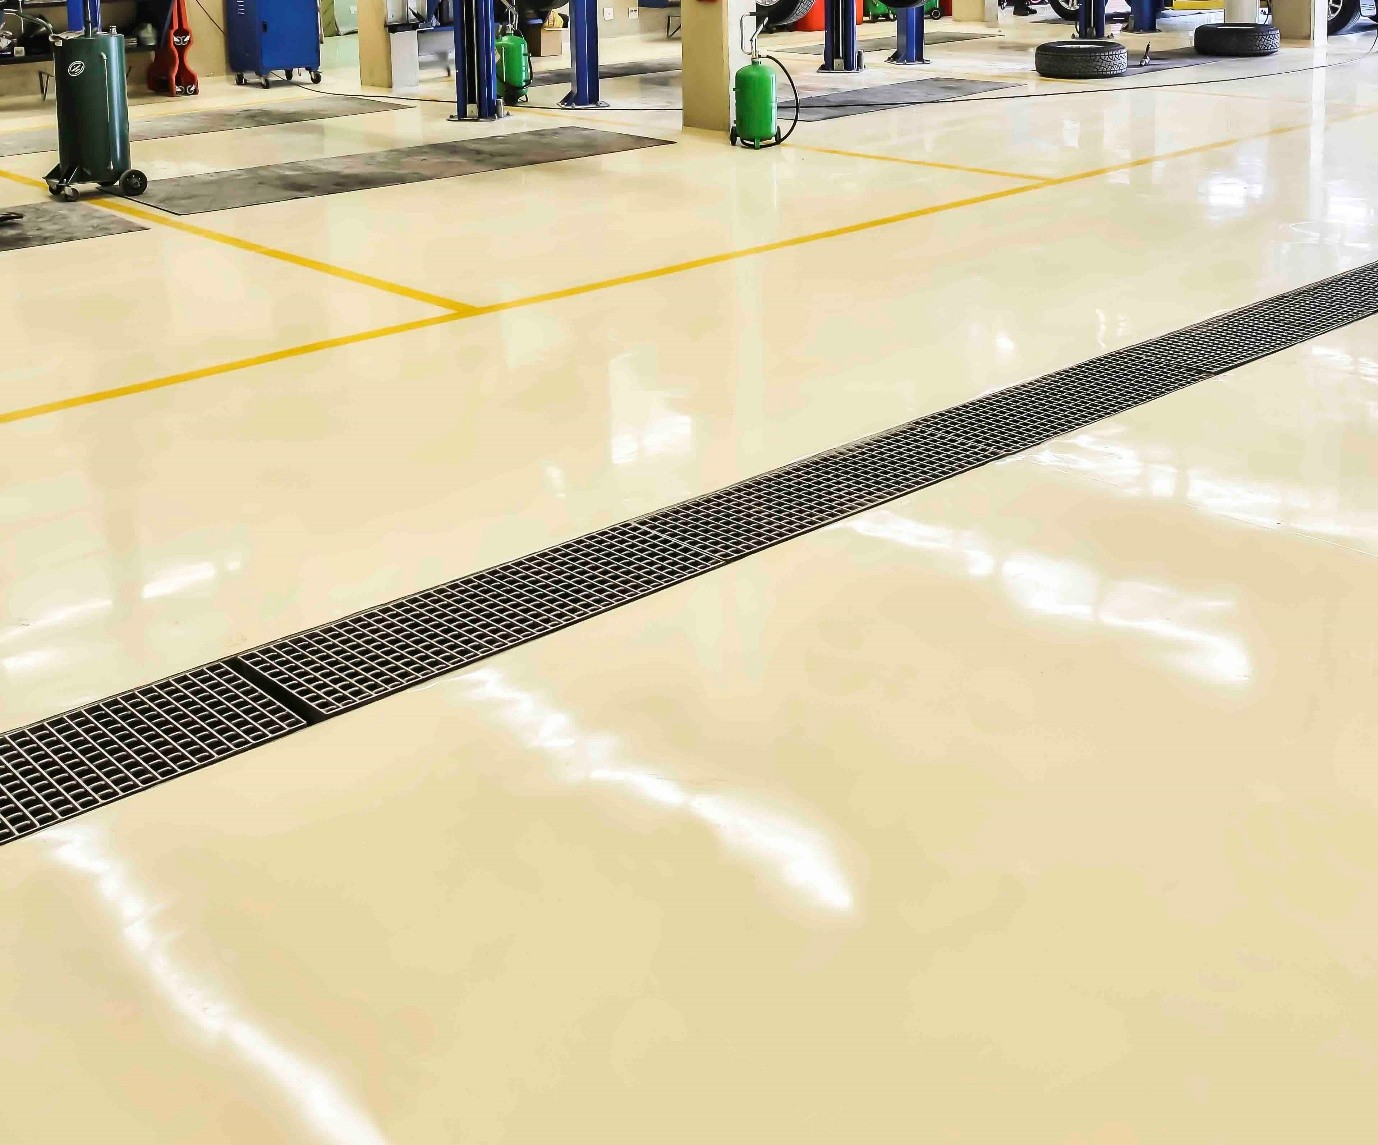 Epoxy Floor Systems-Broward Custom Concrete Solutions-We offer custom concrete solutions including Polished concrete, Stained concrete, Epoxy Floor, Sealed concrete, Stamped concrete, Concrete overlay, Concrete countertops, Concrete summer kitchens, Driveway repairs, Concrete pool water falls, and more